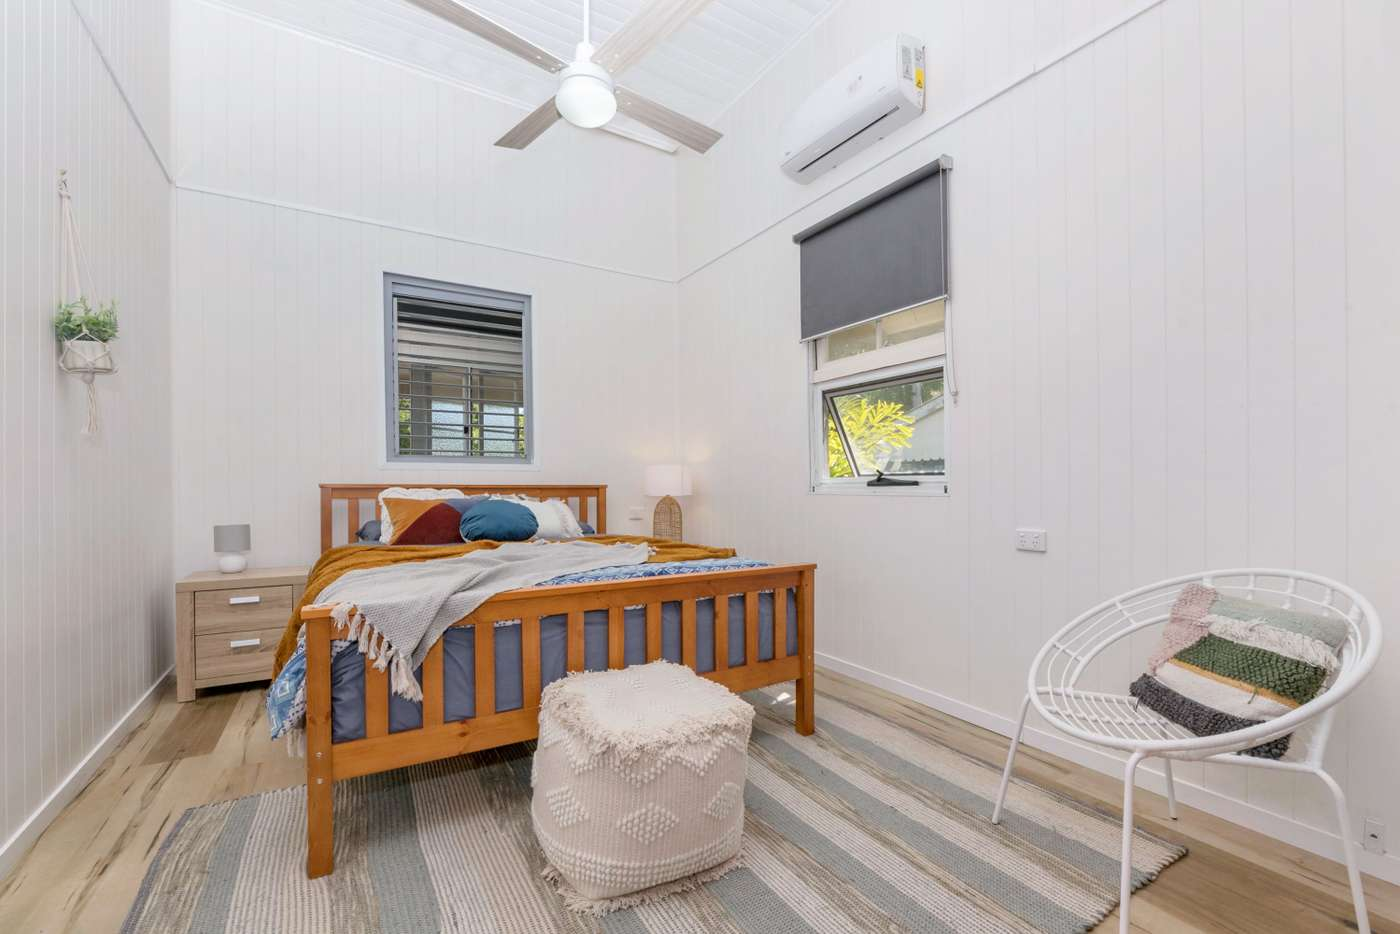 Sixth view of Homely house listing, 31 Greenslade Street, West End QLD 4810